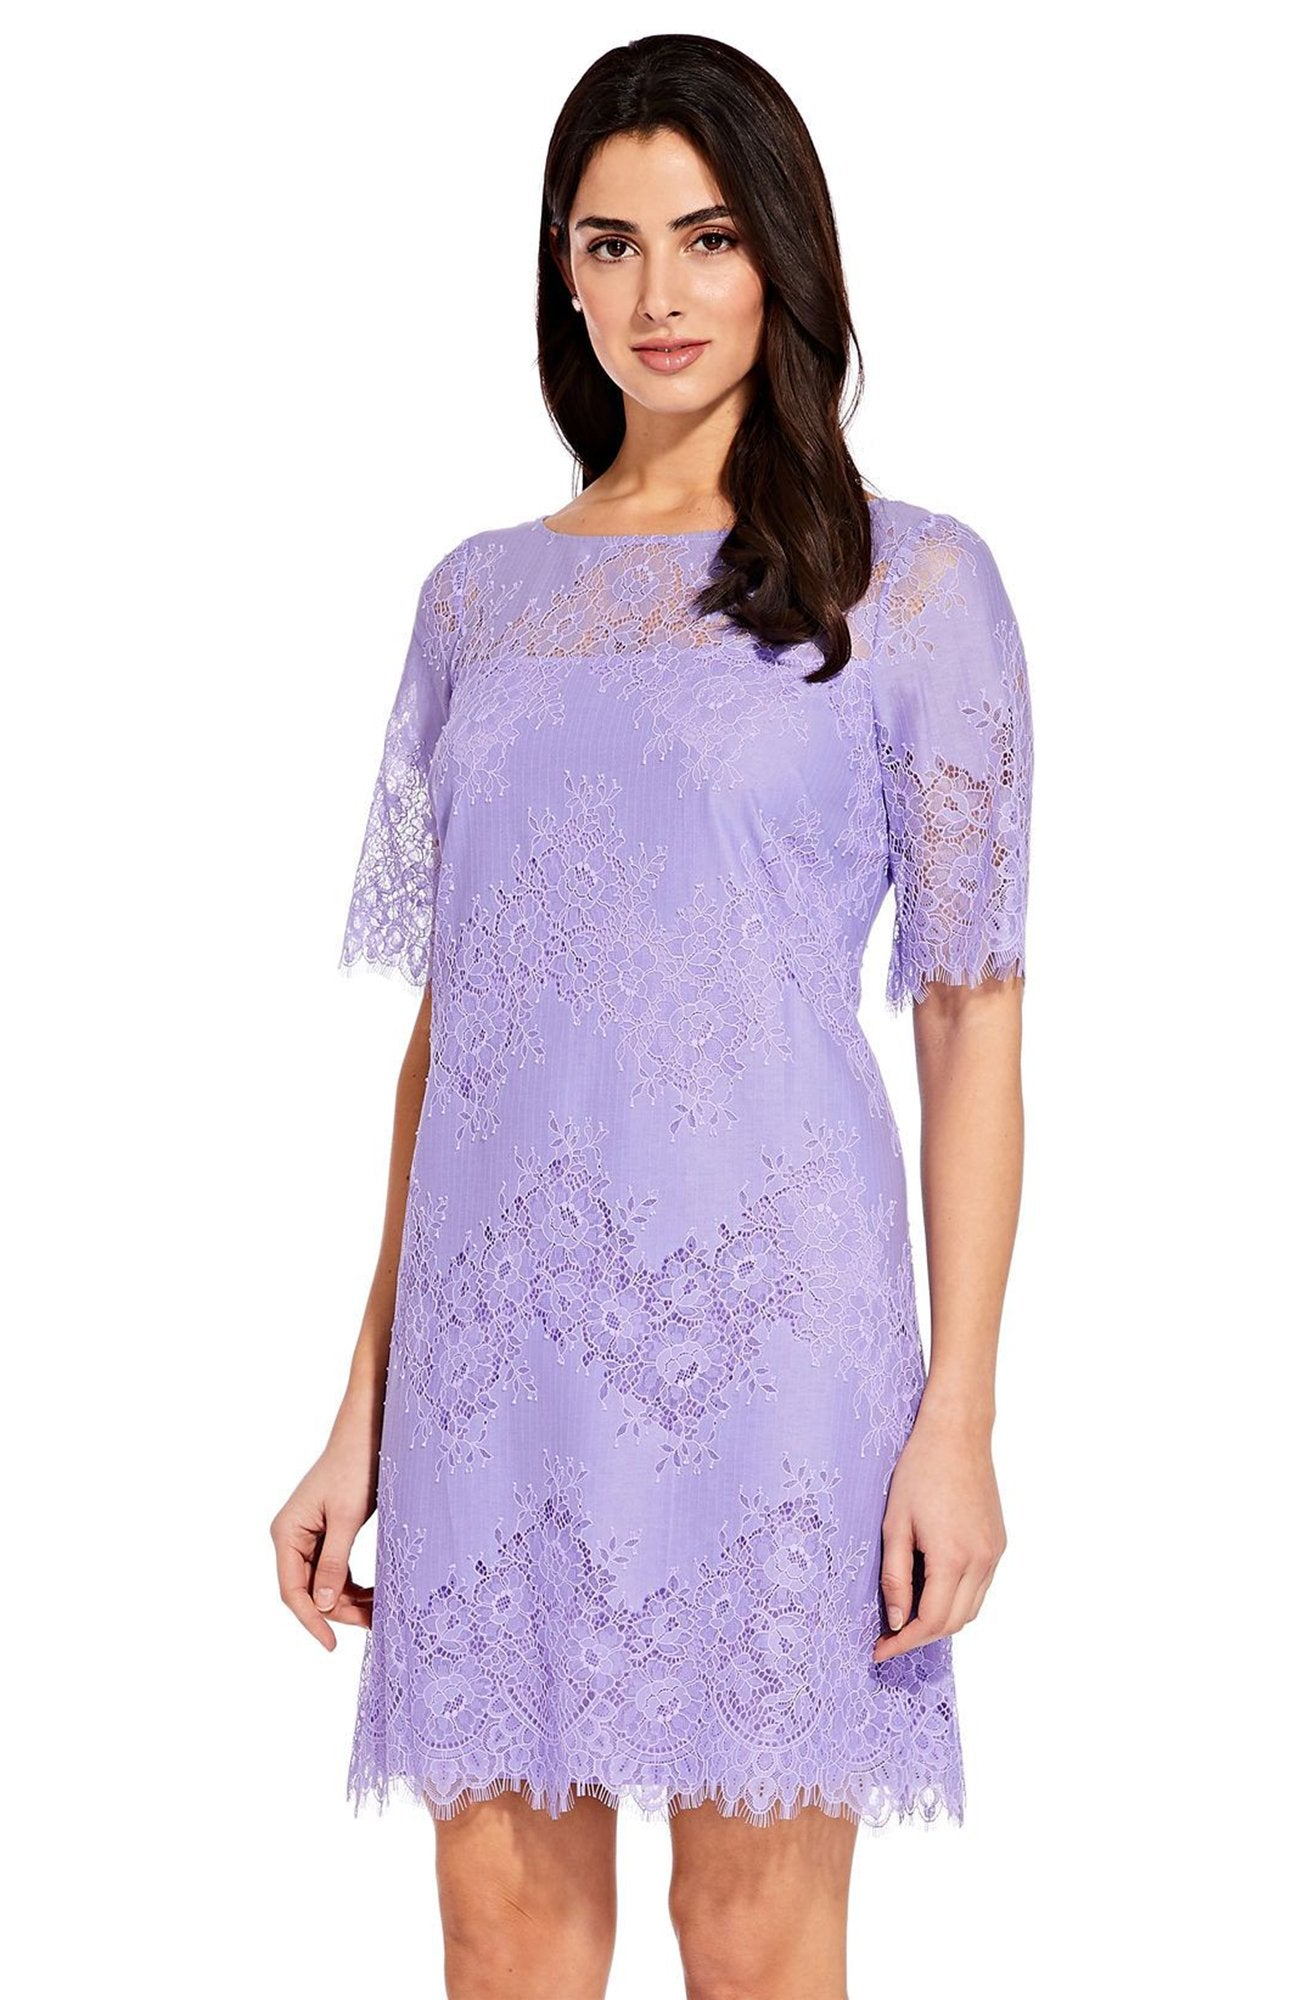 Adrianna Papell - AP1D103221 Floral Lace Bateau A-line Dress In Purple